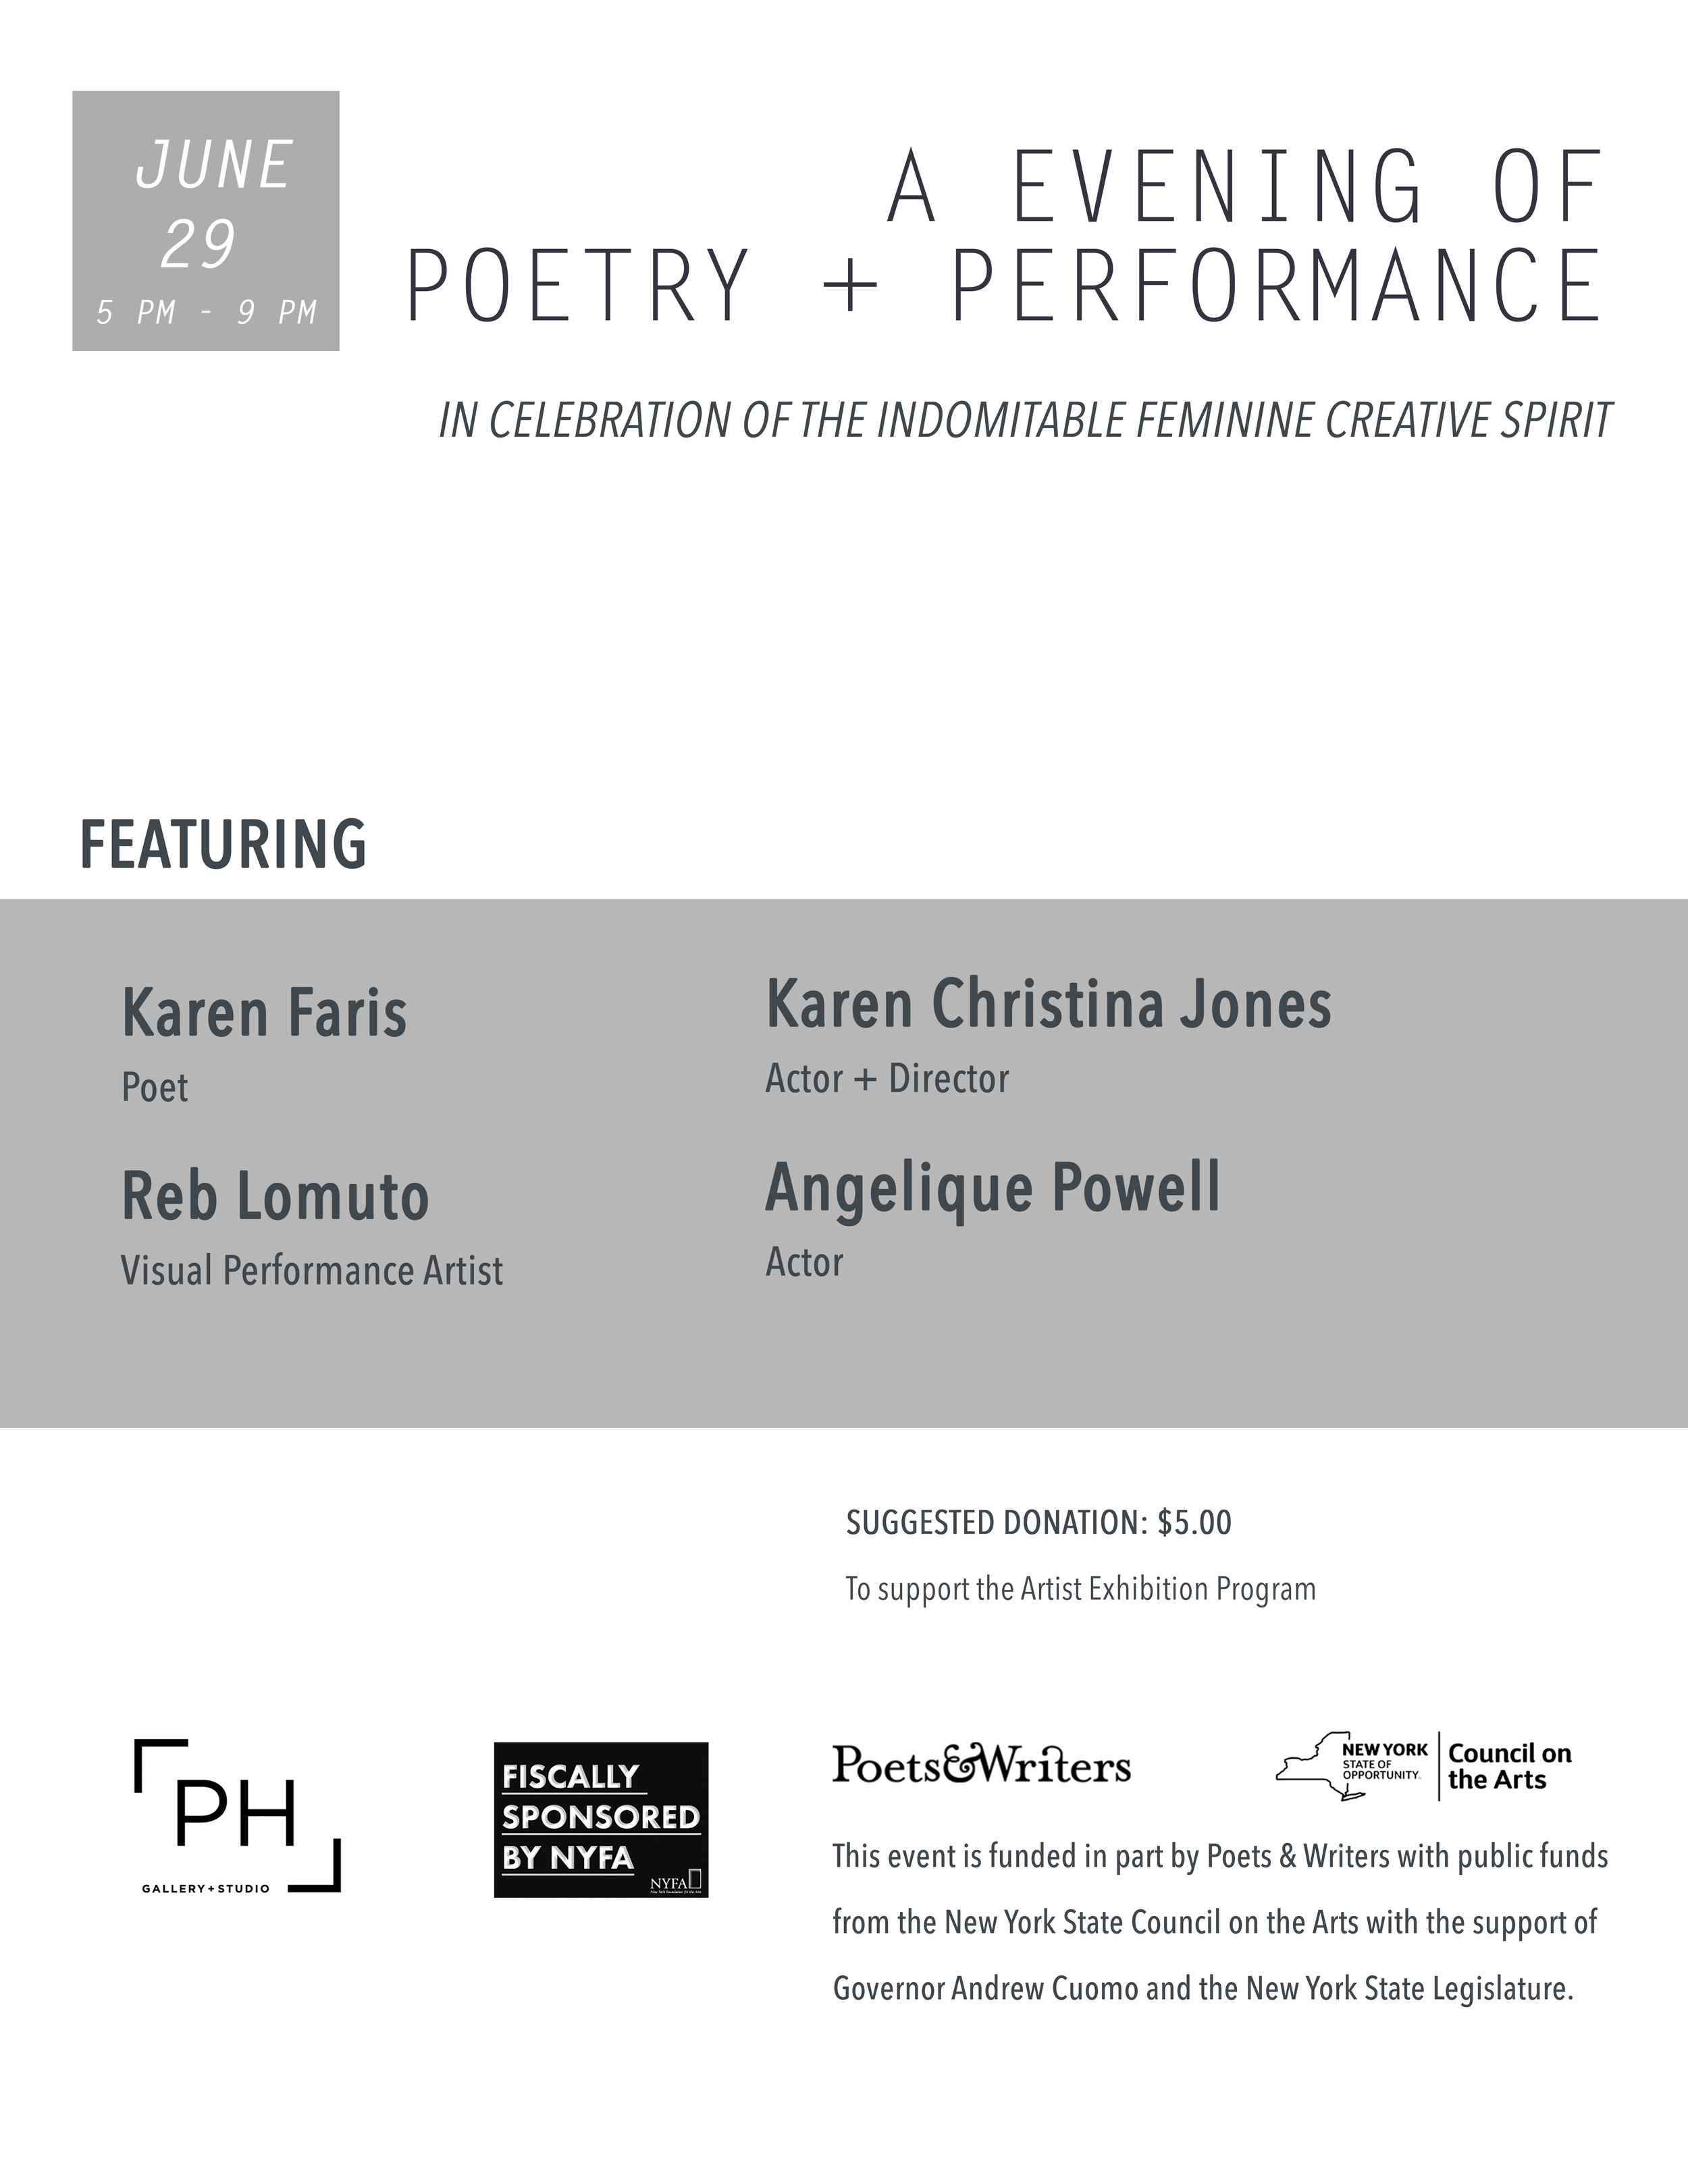 AN EVENING OF POETRY + PERFORMANCE